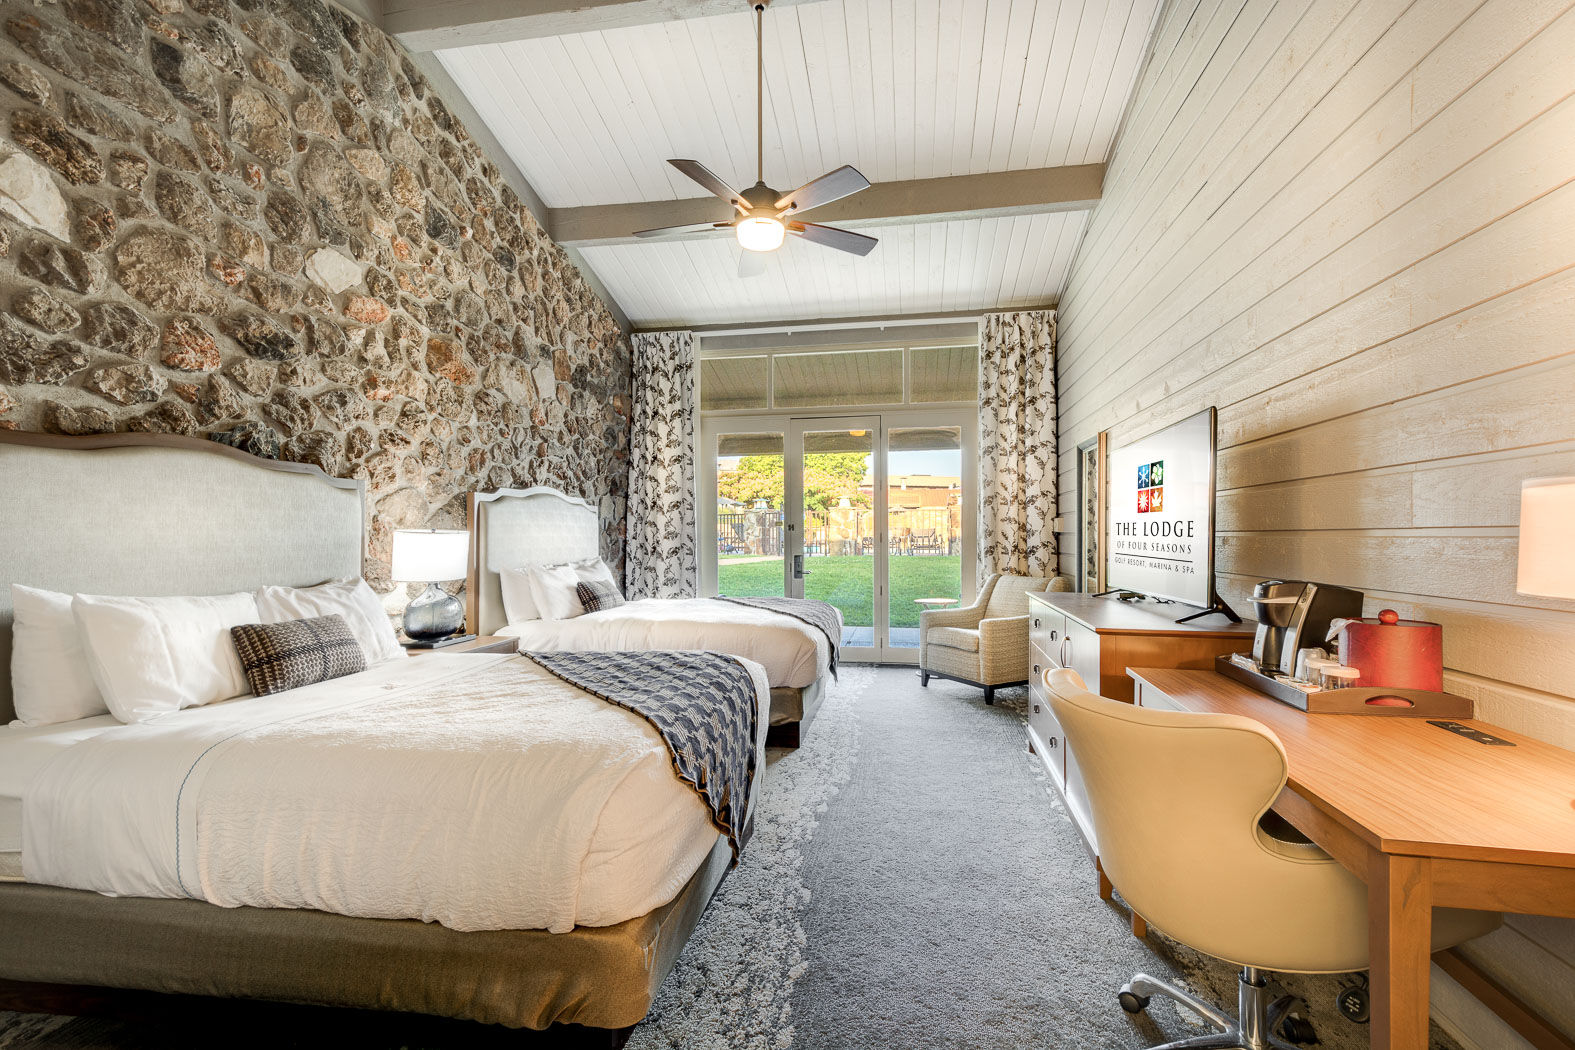 Rooms Amp Suites Resorts At Lake Ozark The Lodge Of Four